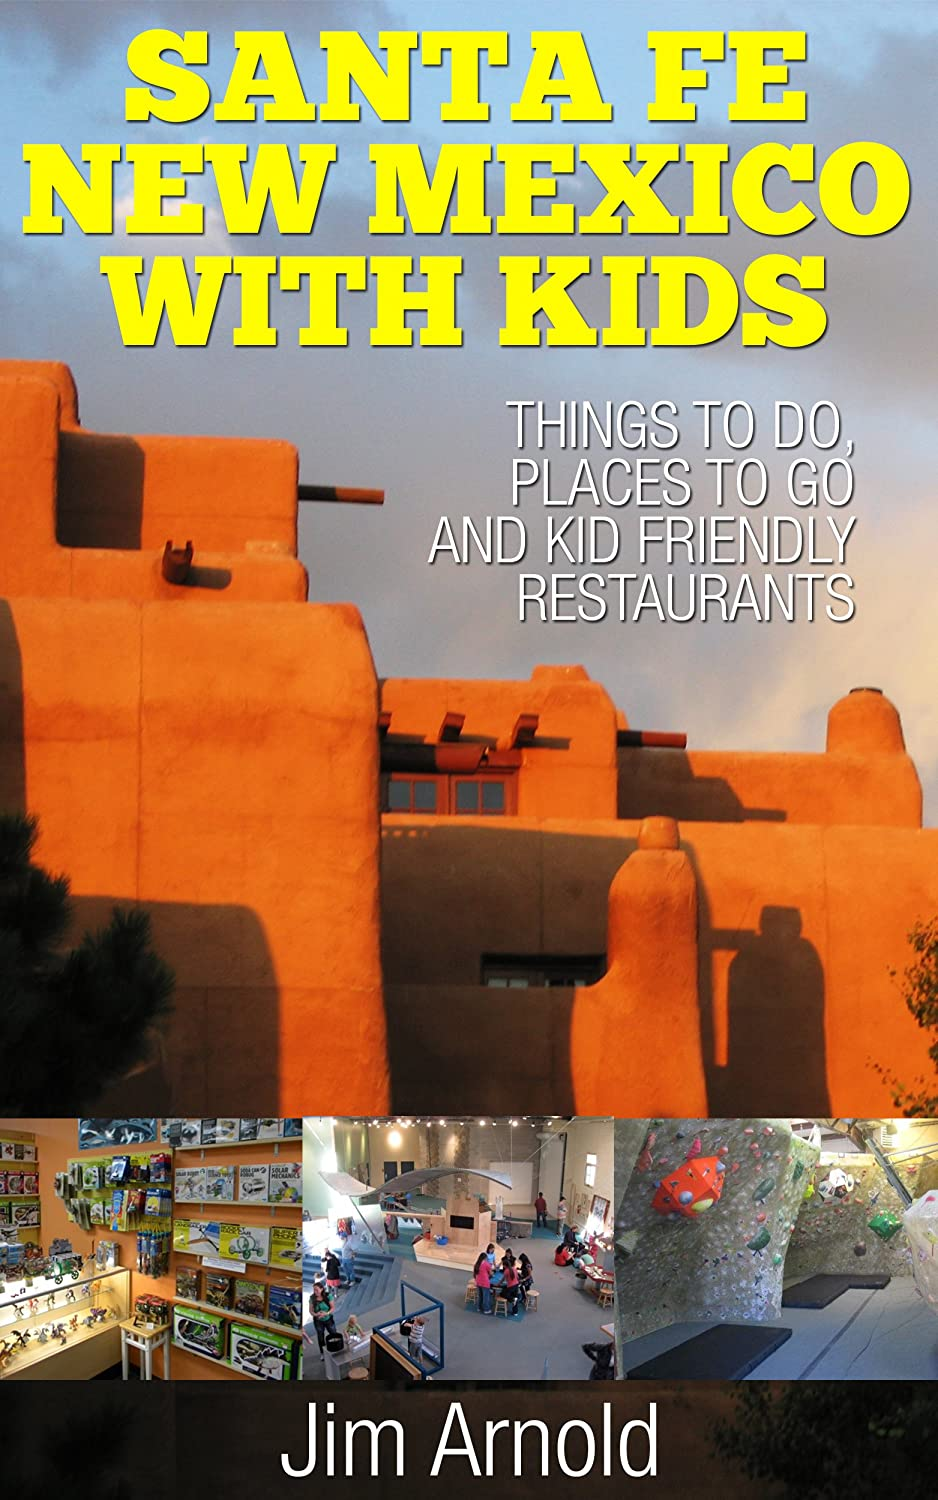 SANTA FE NEW MEXICO WITH KIDS